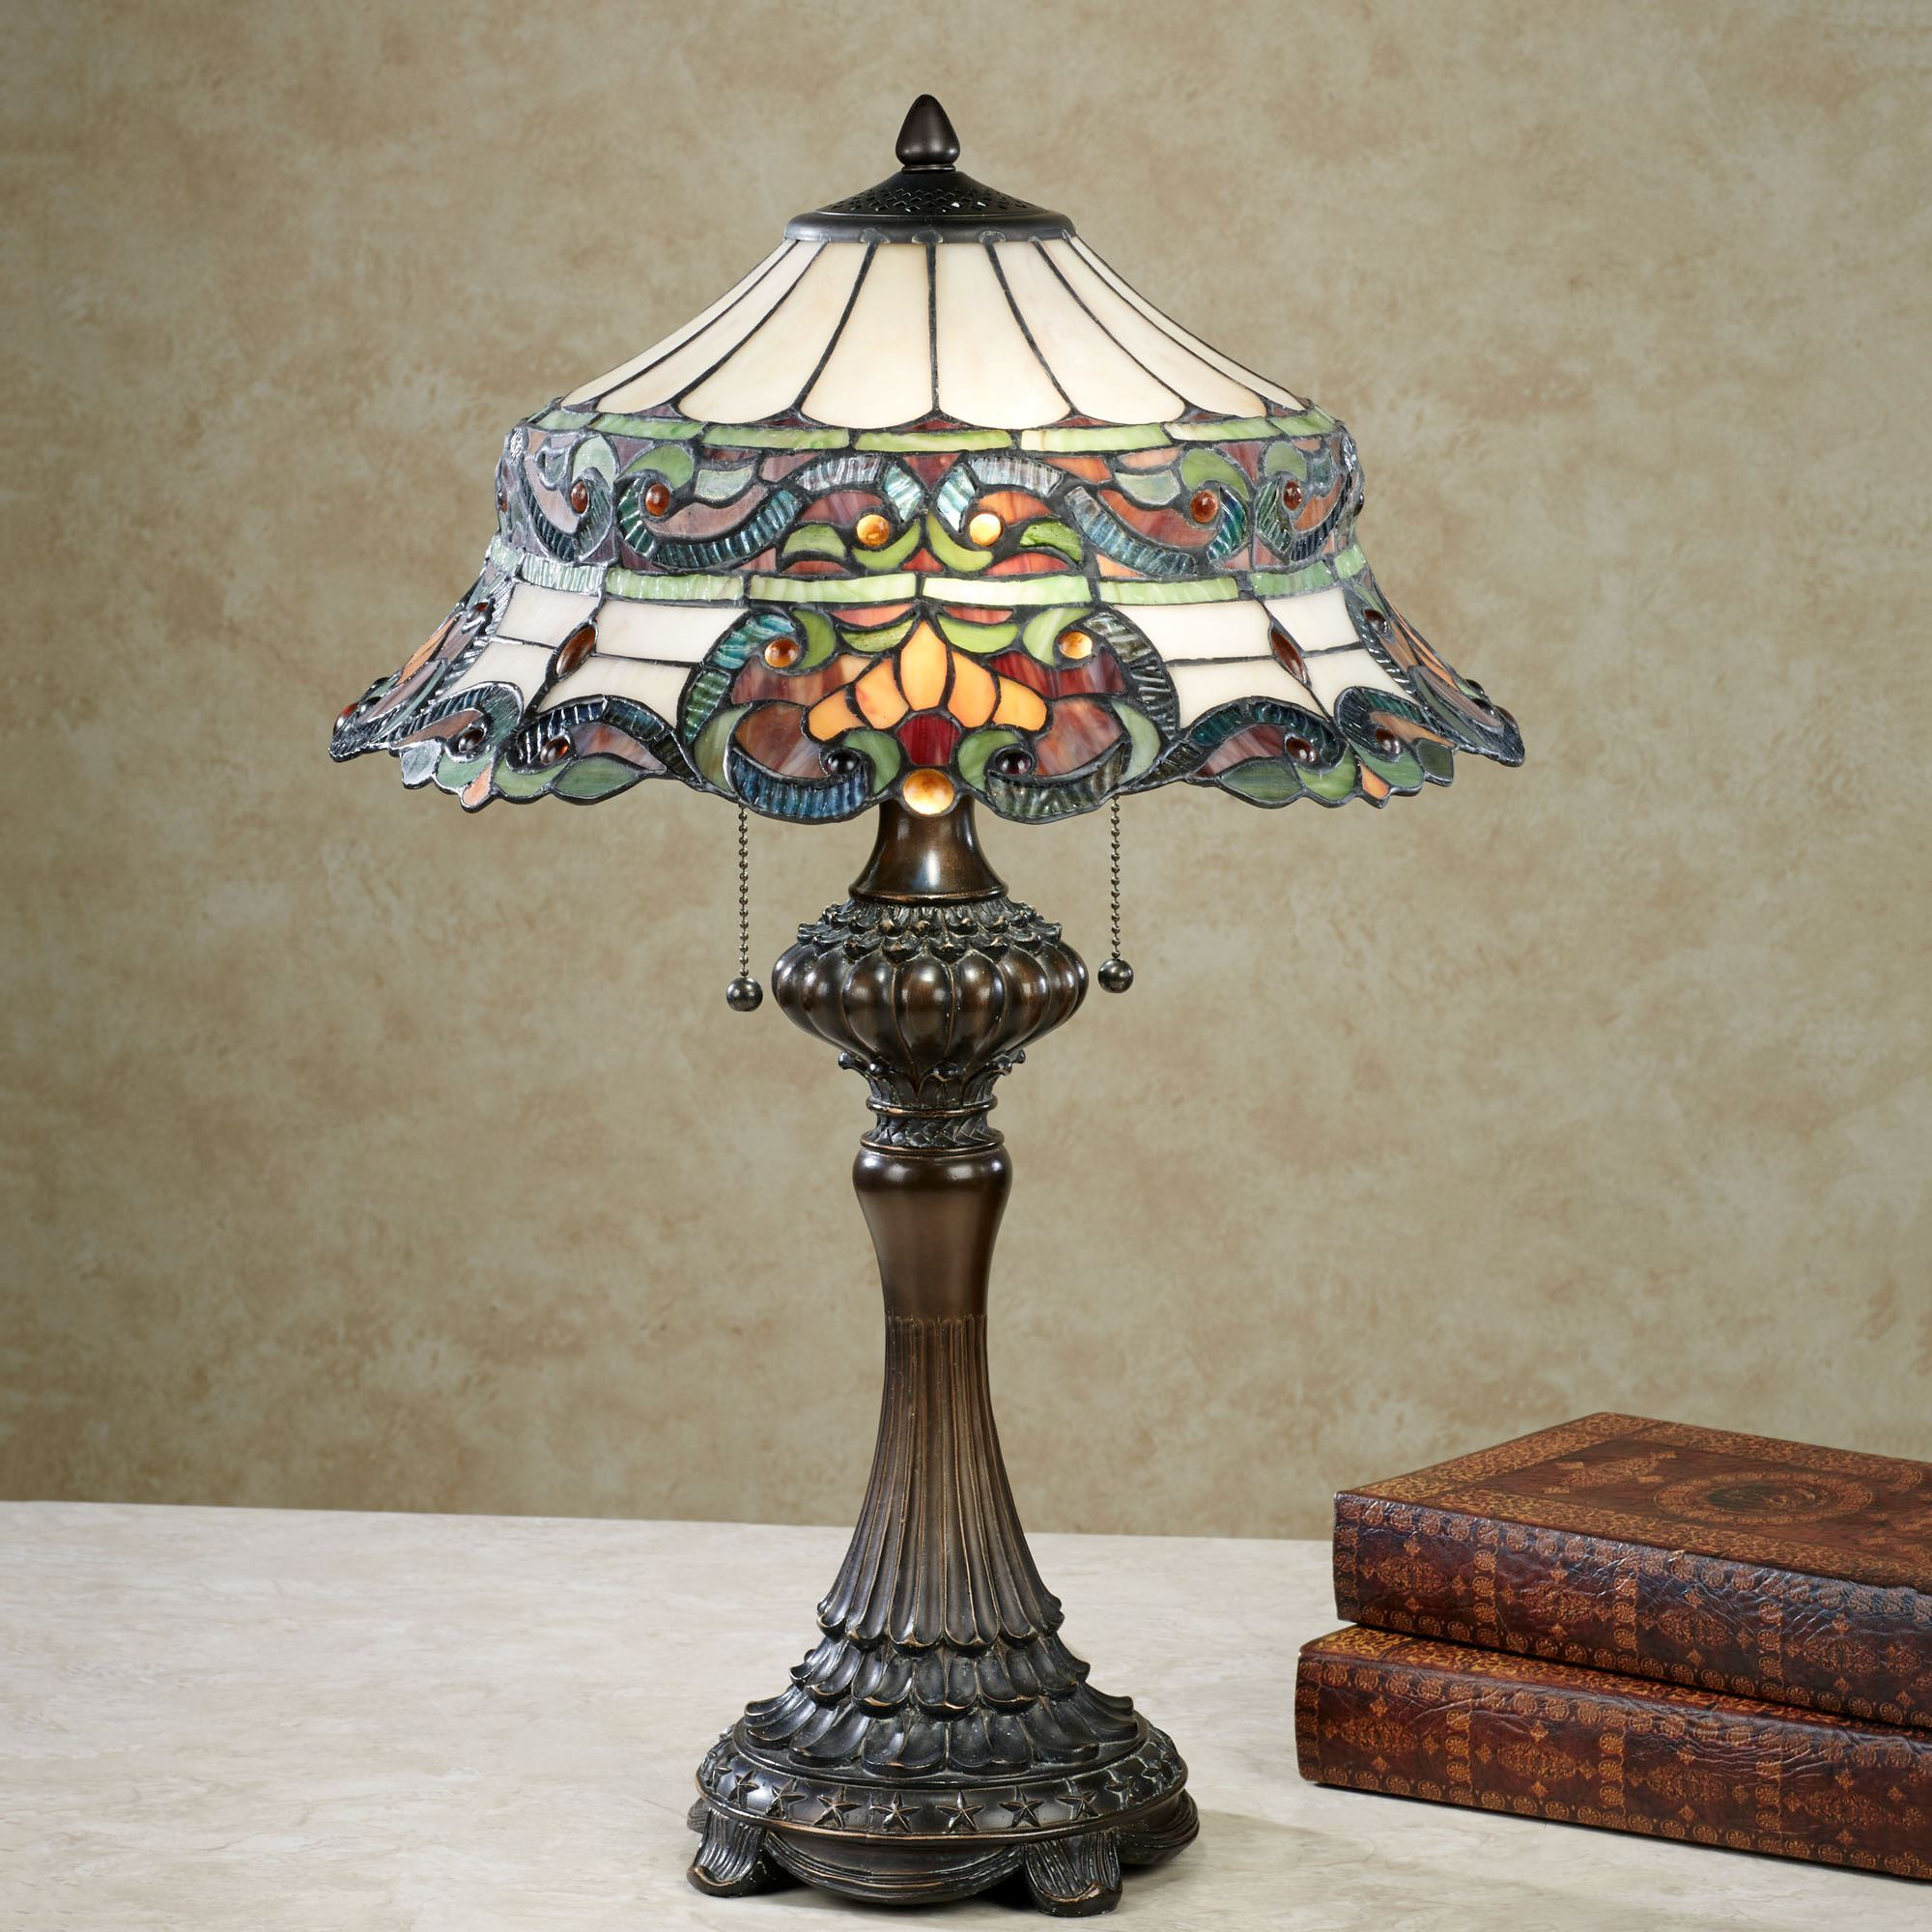 luxury floor table lamp picture dragonfly tiffany lamps glass of desk blue stained